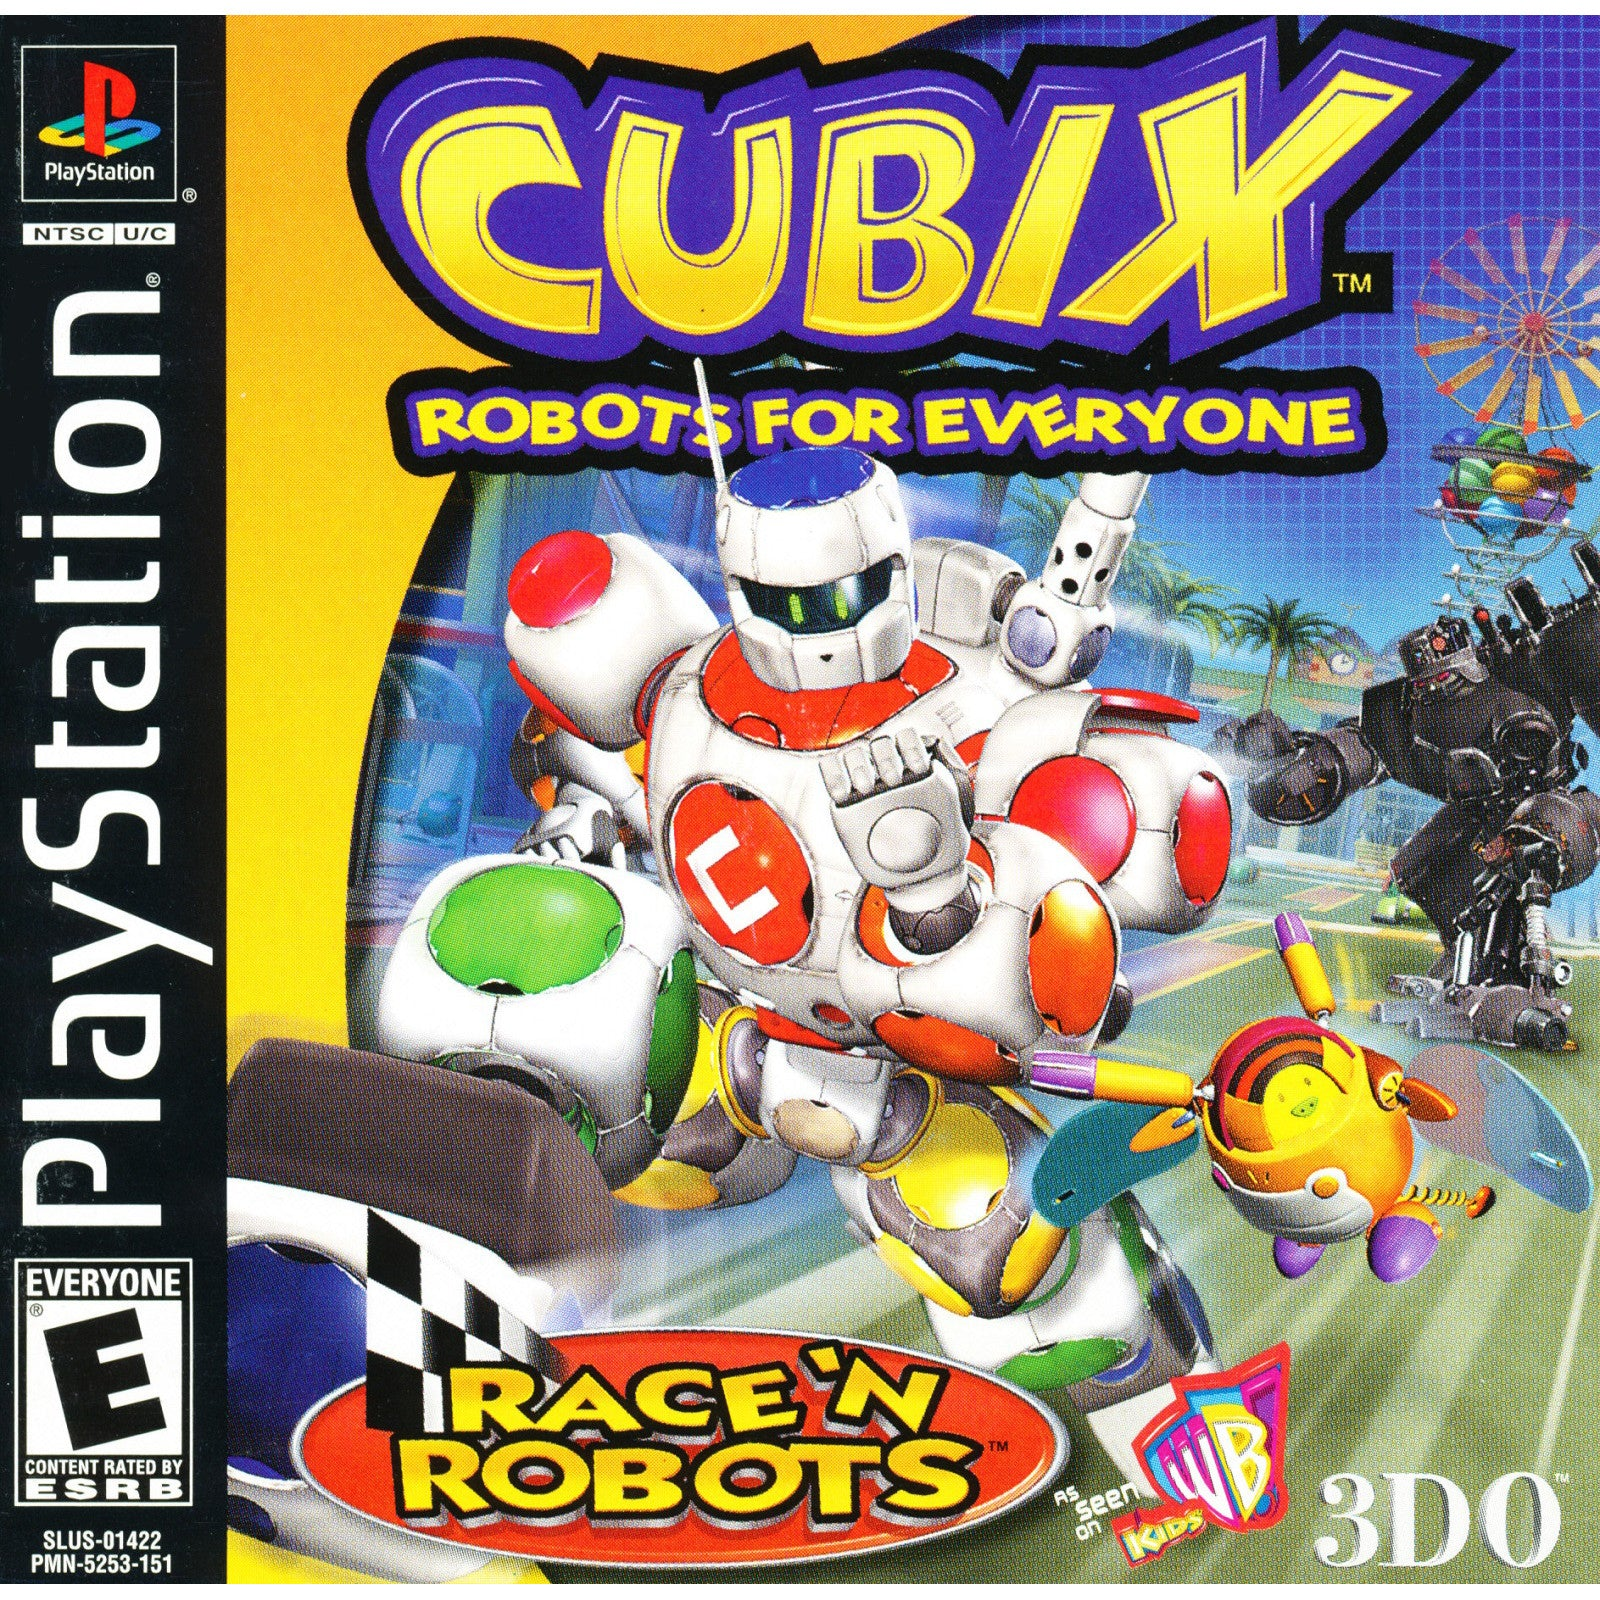 Cubix Robots for Everyone for PlayStation 1